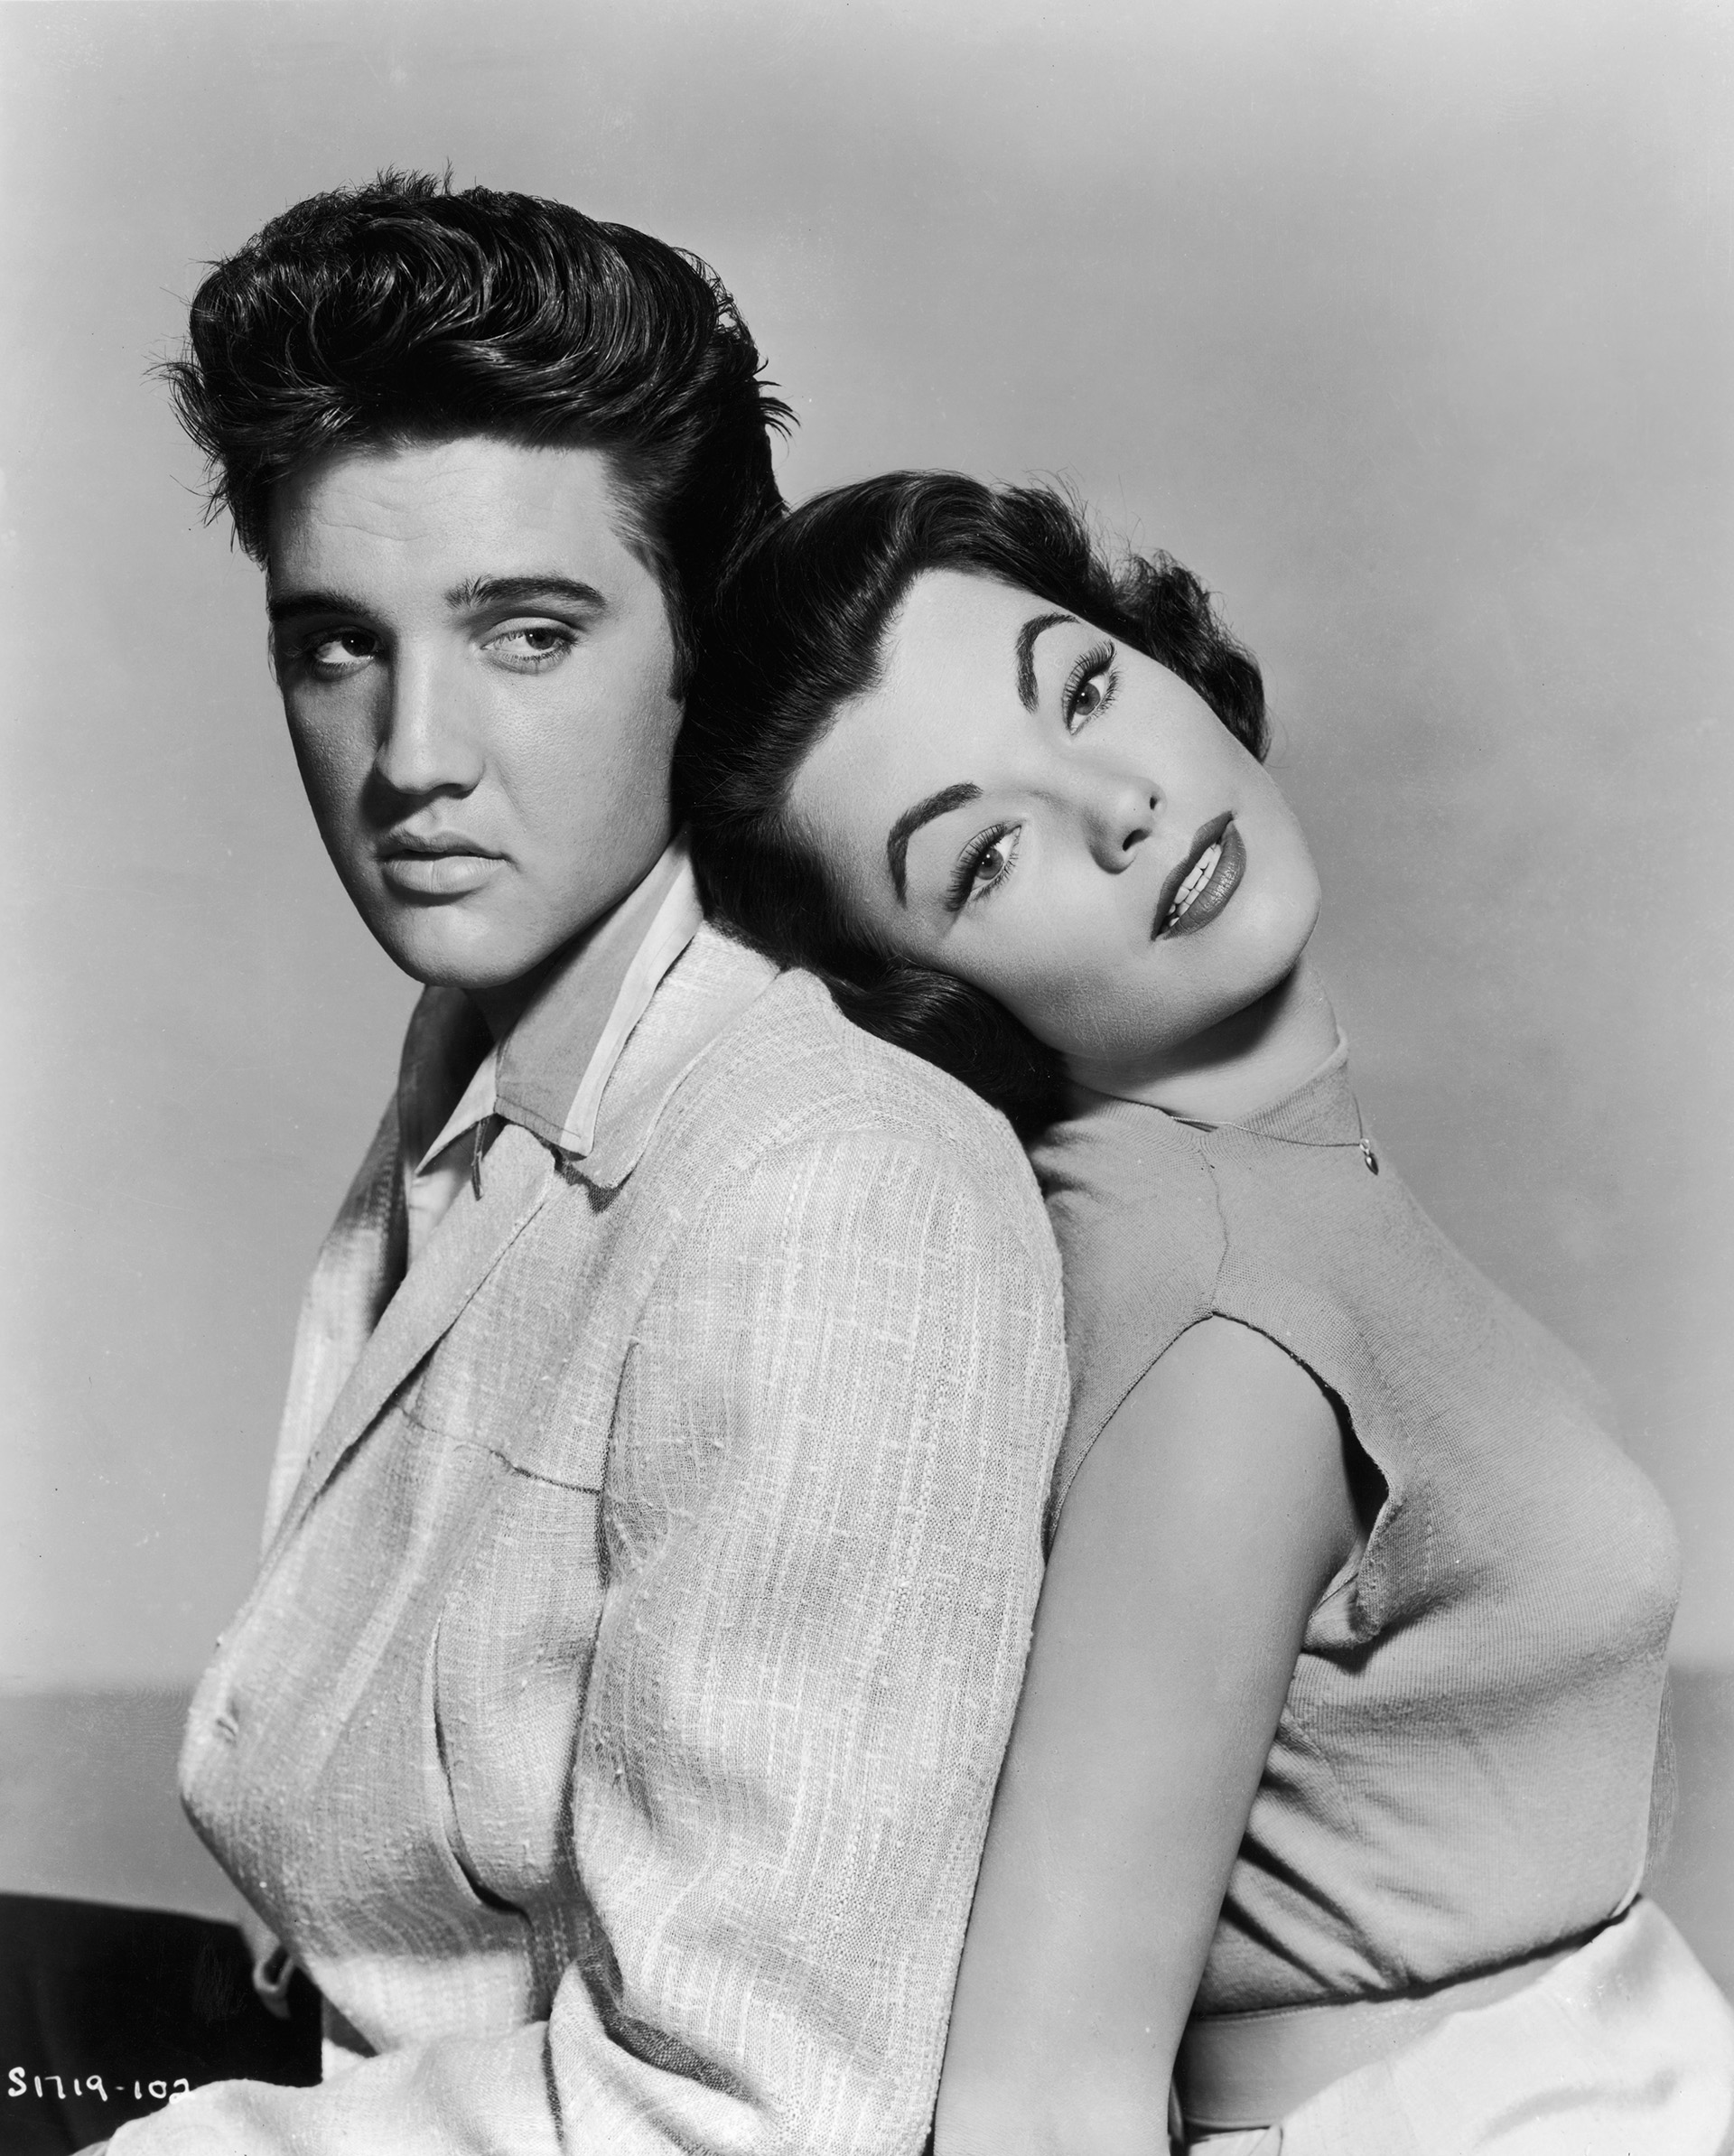 Elvis Presley e Judy Tyler, ambos protagonistas das filmagens do musical 'Jailhouse Rock' em 1957 (Foto: Hulton Archive / Getty Images)